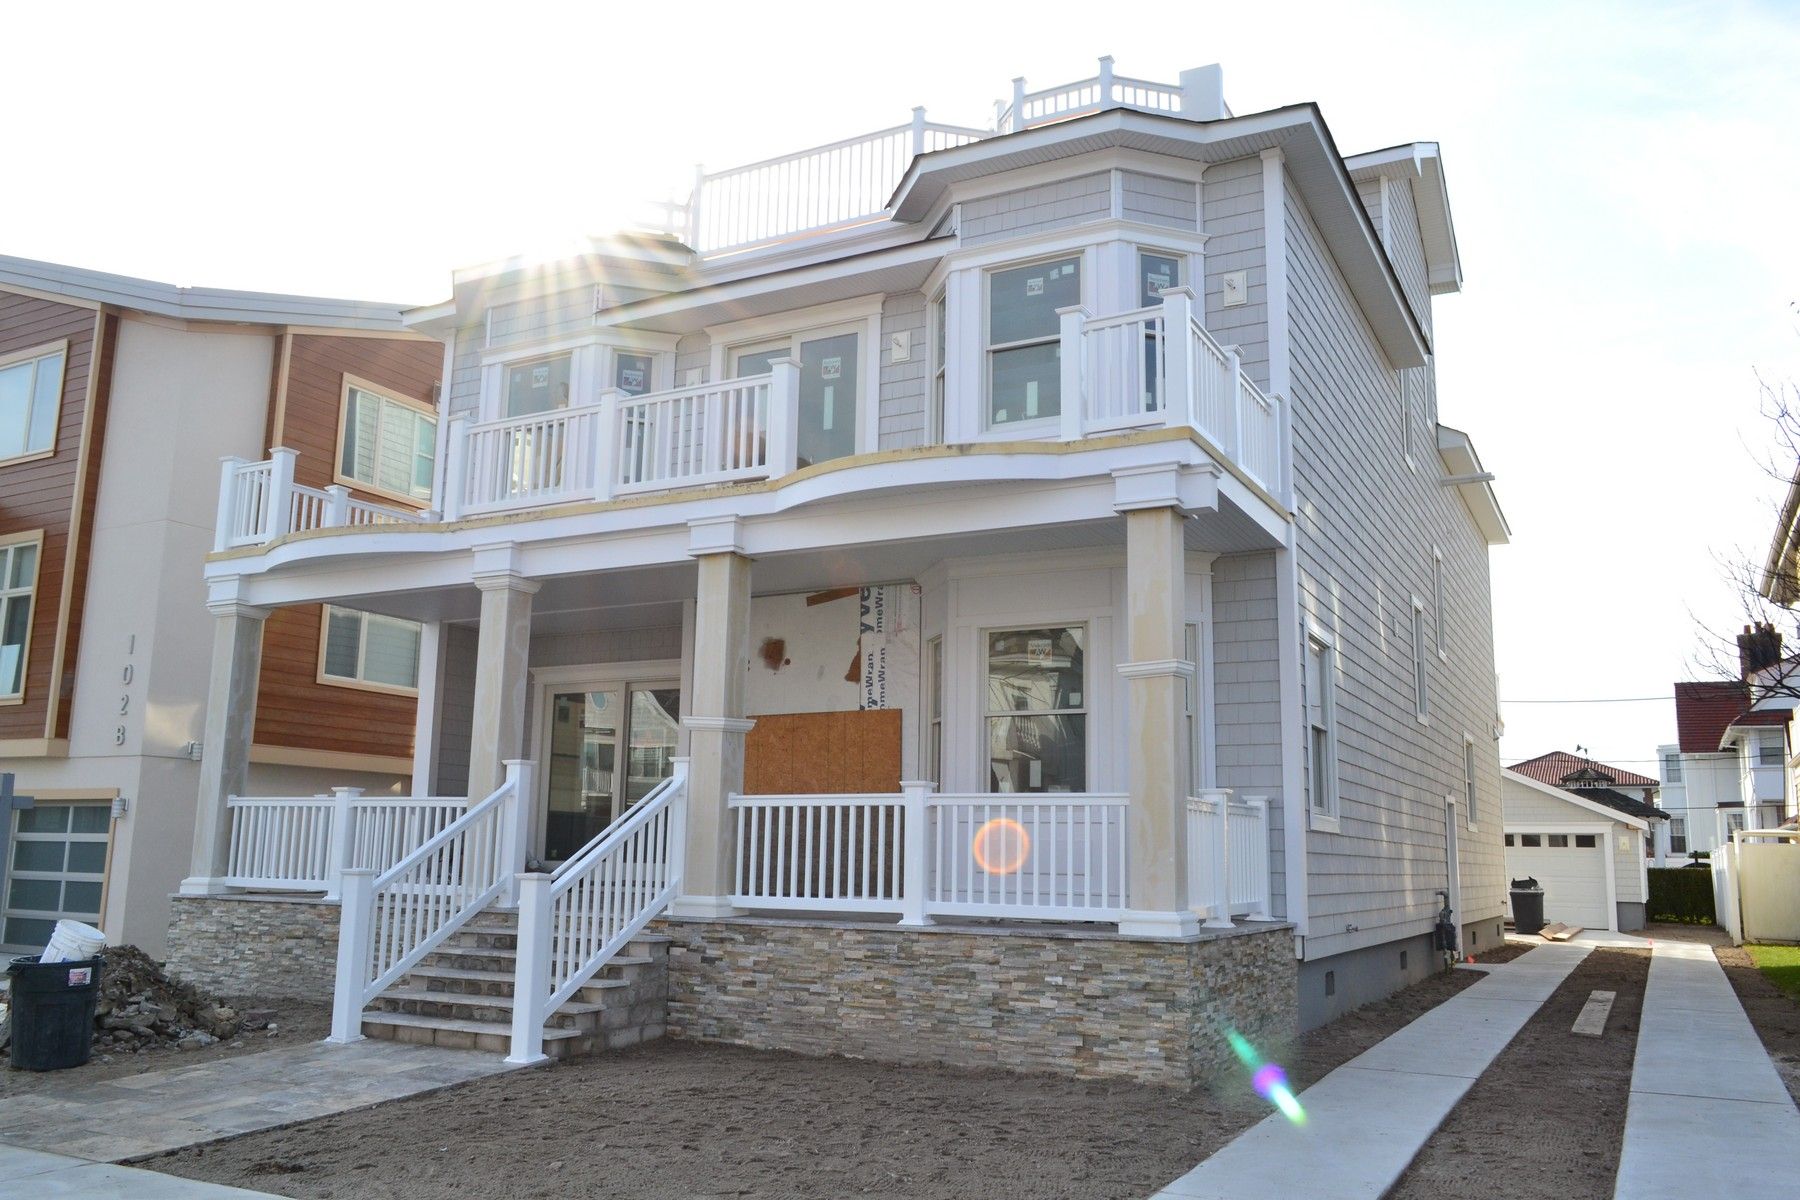 Single Family Home for Sale at 102 S Dudley Ave Ventnor, New Jersey 08406 United States